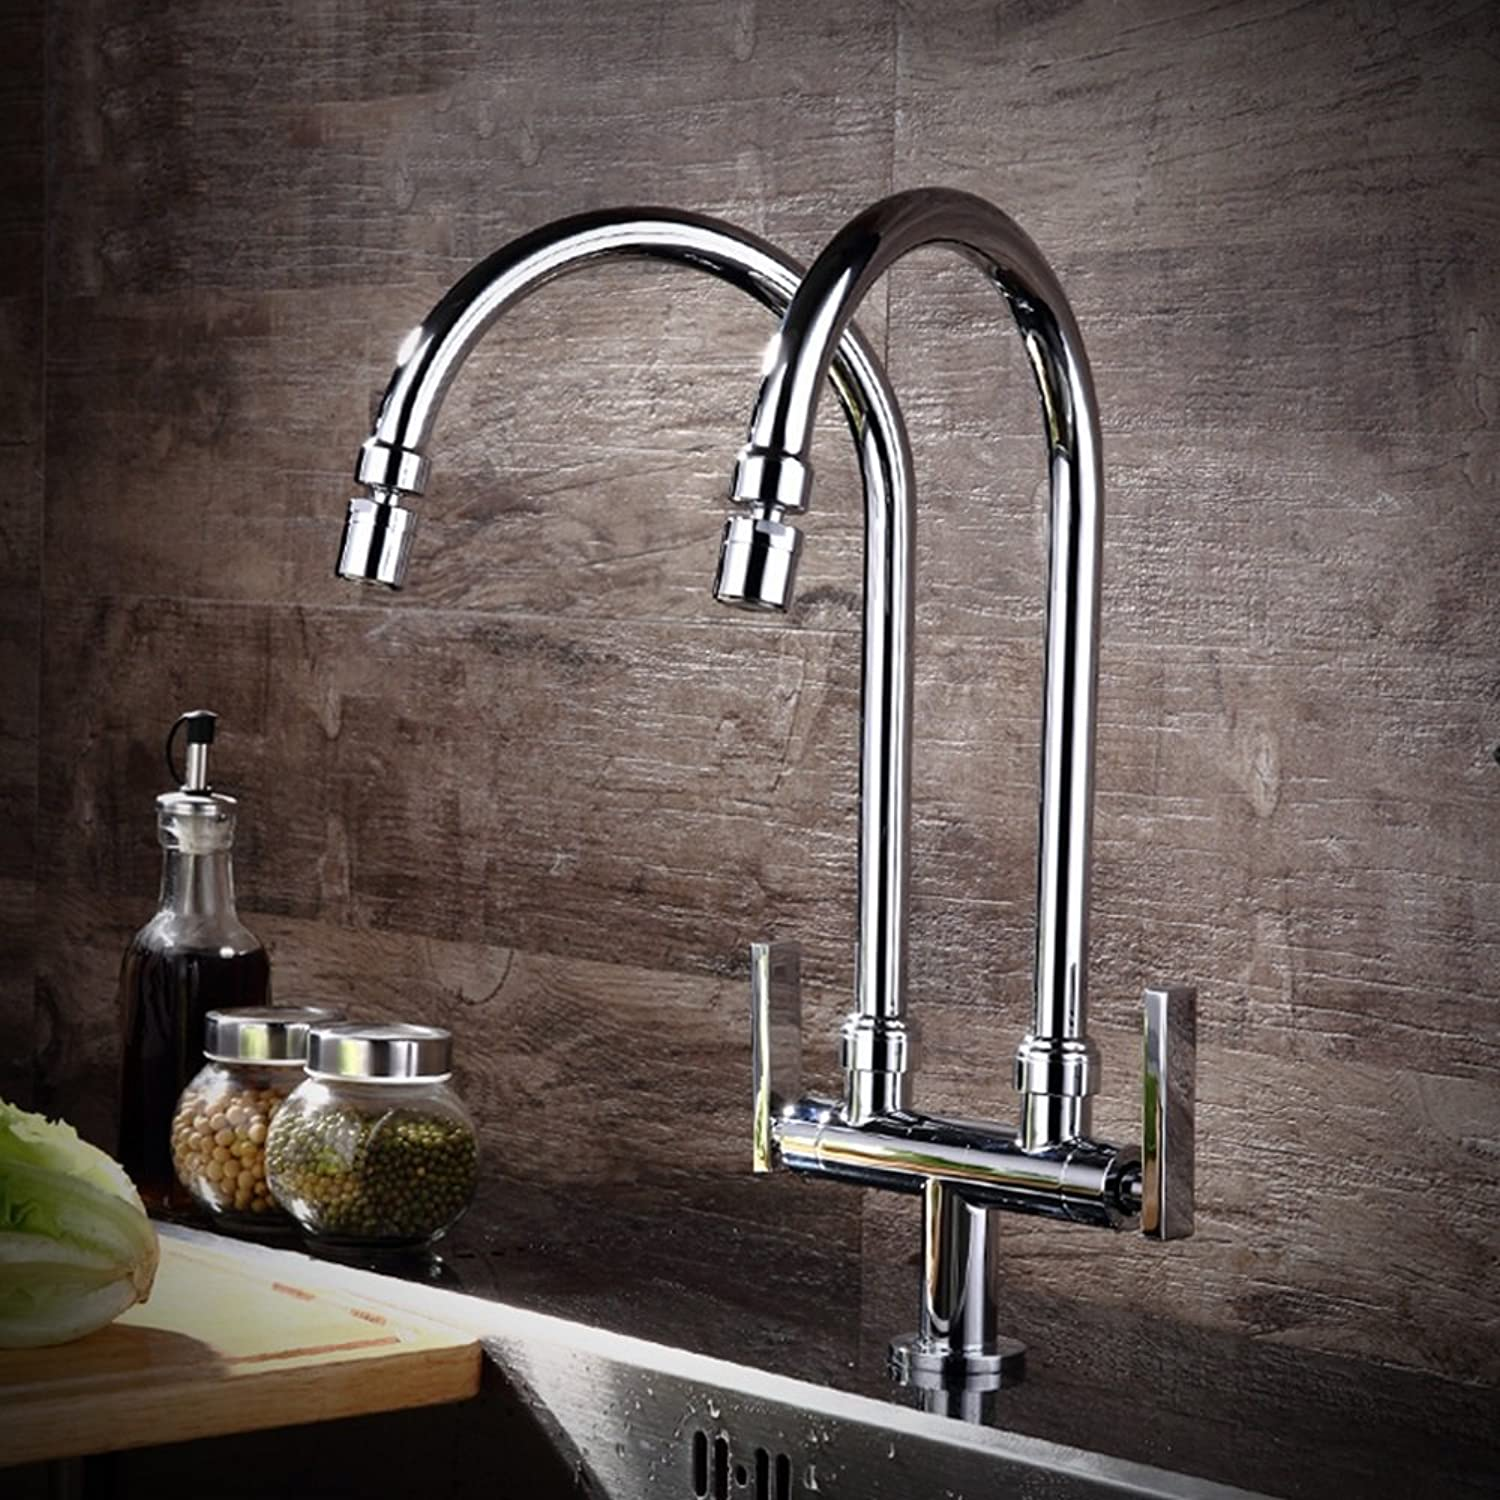 Kitchen faucet single cold double tube double outlet faucet vegetable bowl sink can redate universal taps ( Style   B2 )